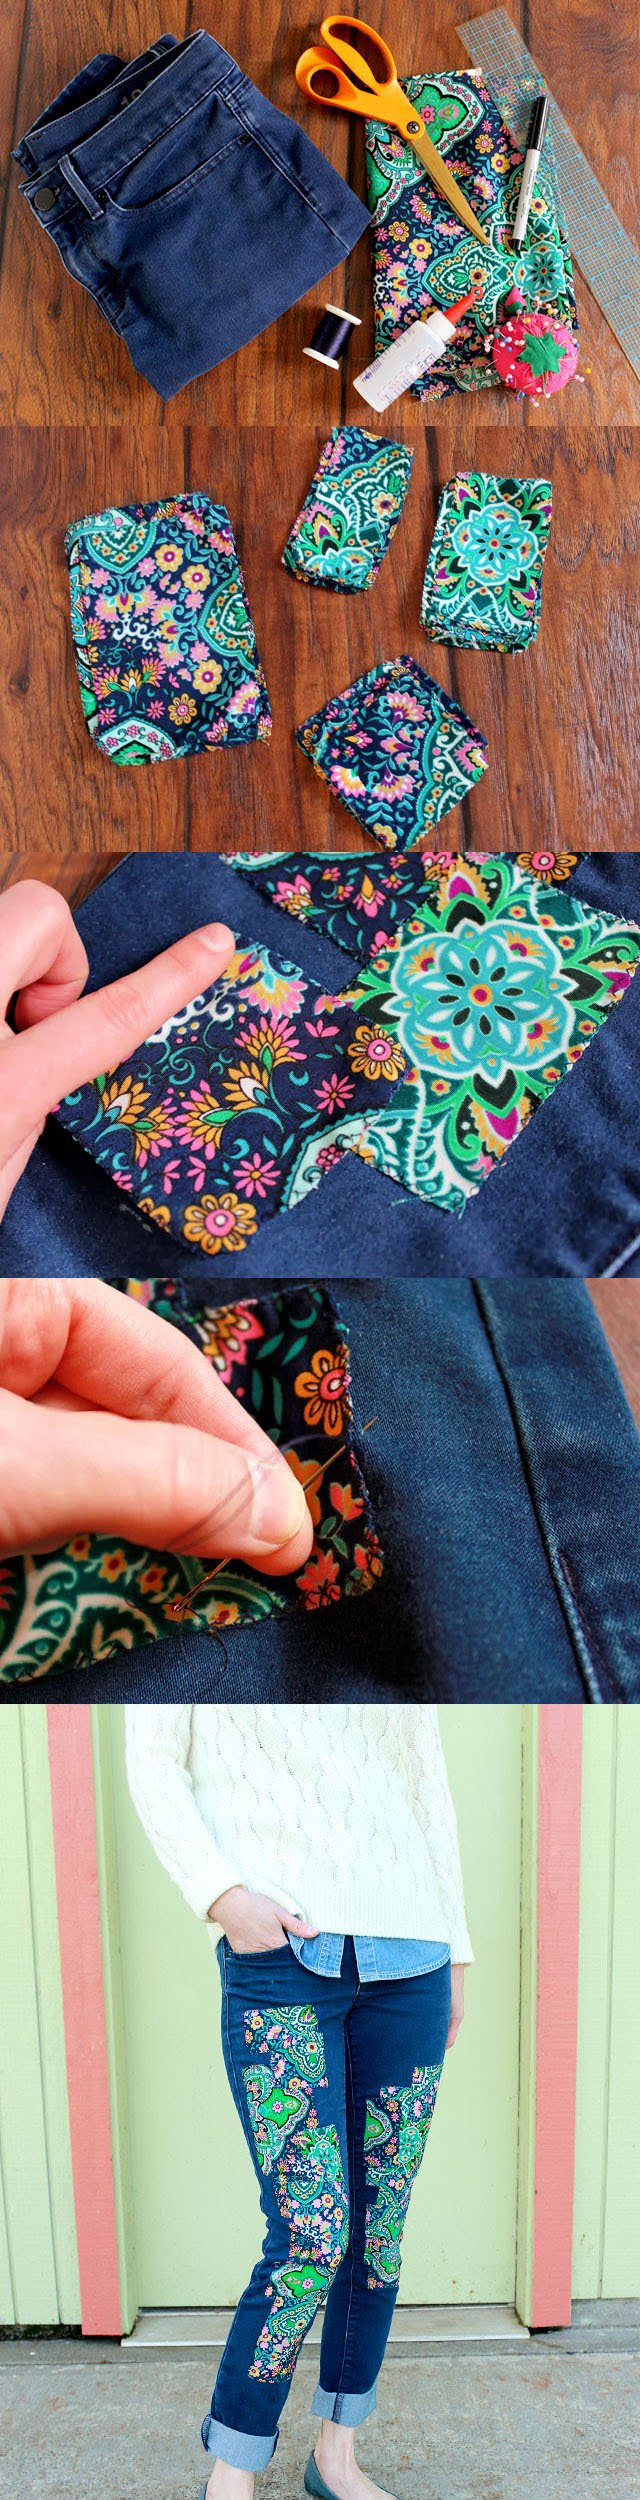 15 diy clothing tutorials fashionable diy clothes you should not miss styles weekly - Diy ideas repurposing old clothing ...